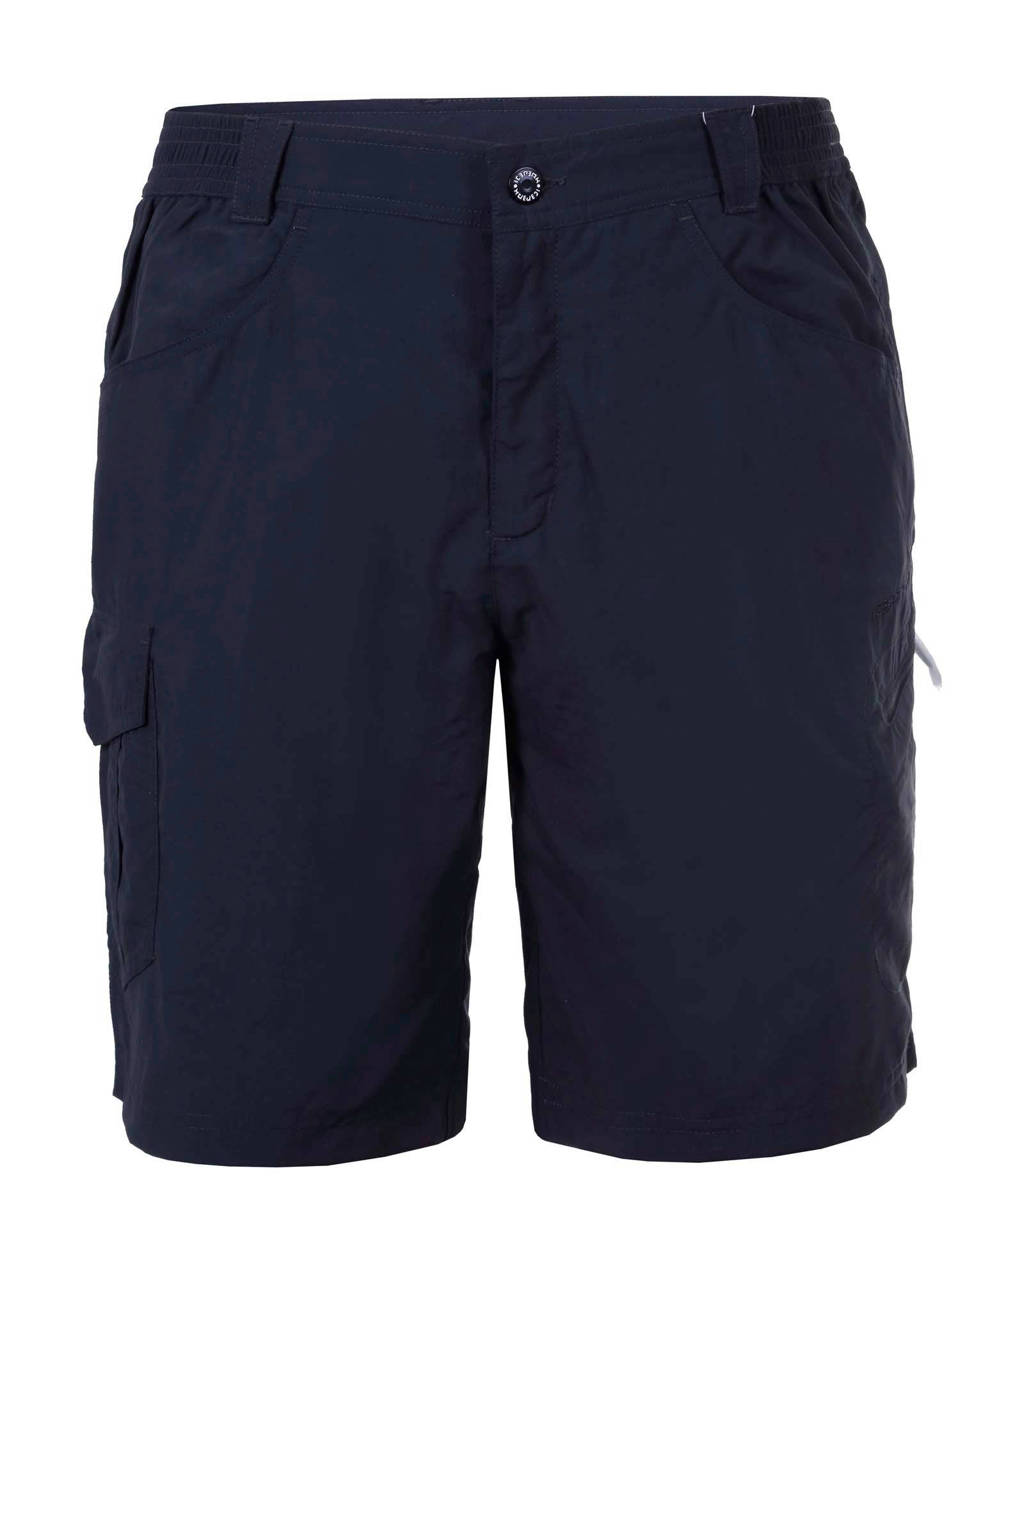 Icepeak outdoor short Scooter antraciet, Anthracite